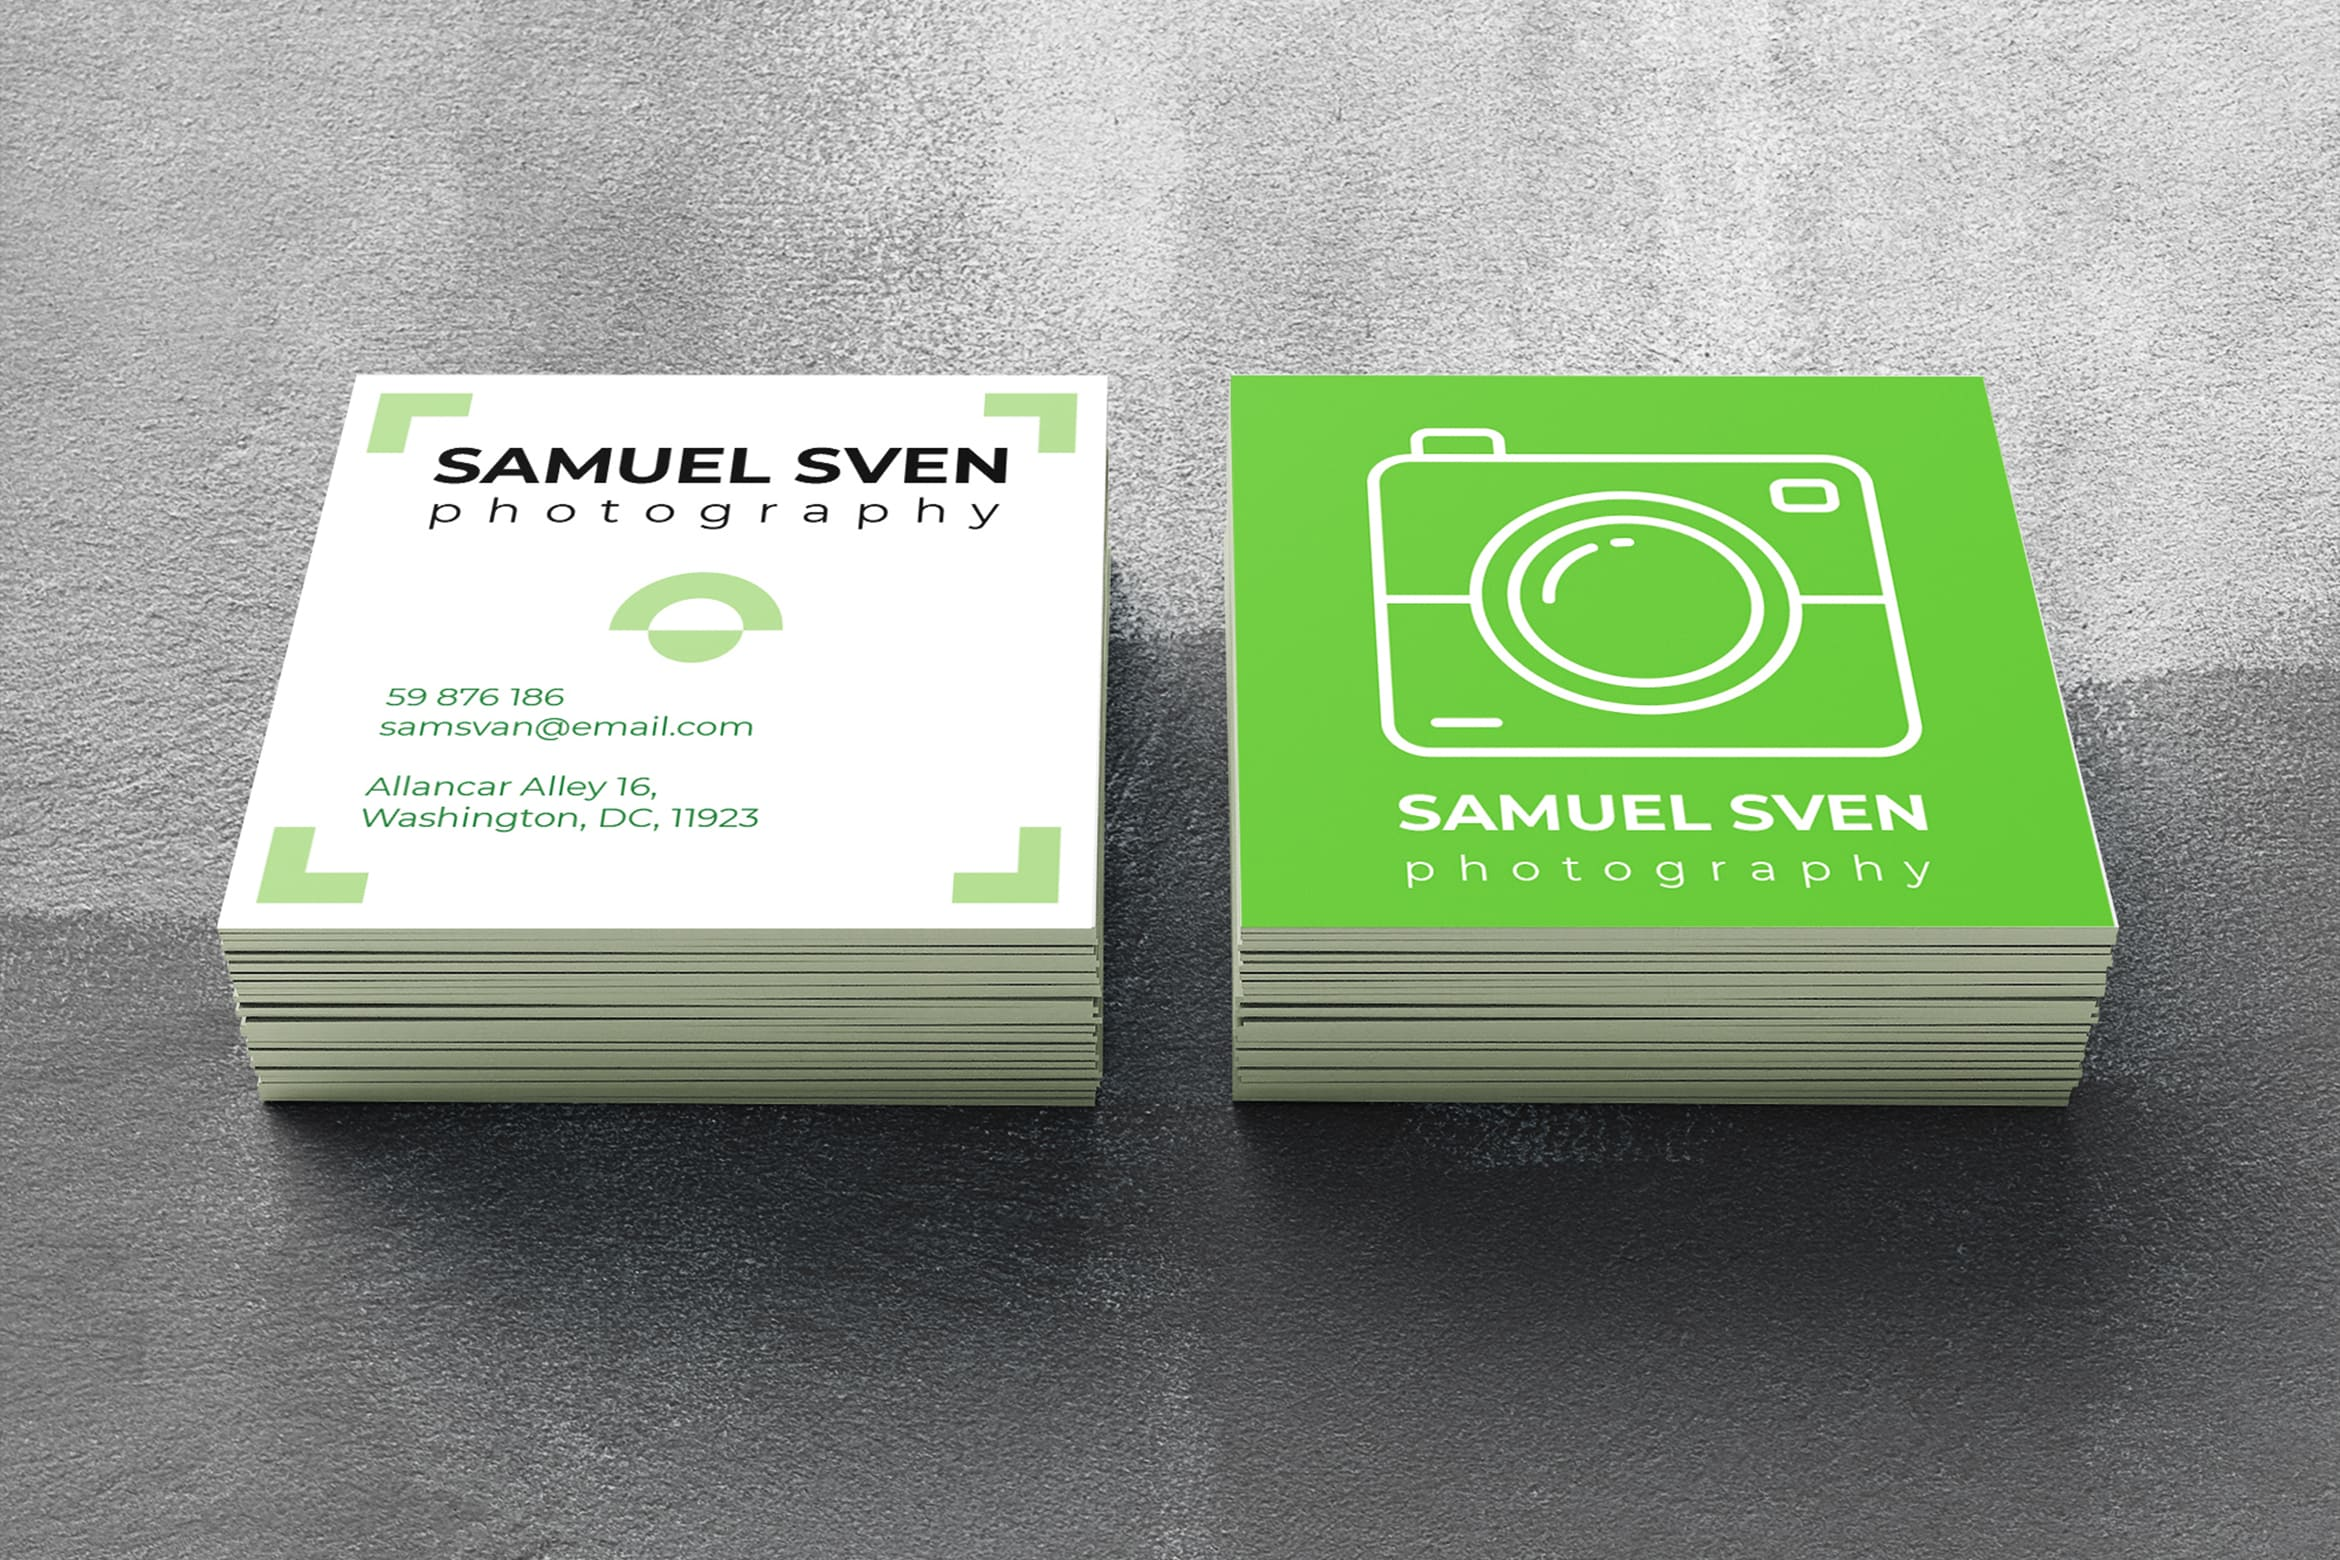 Business Card - Photography Professoinal